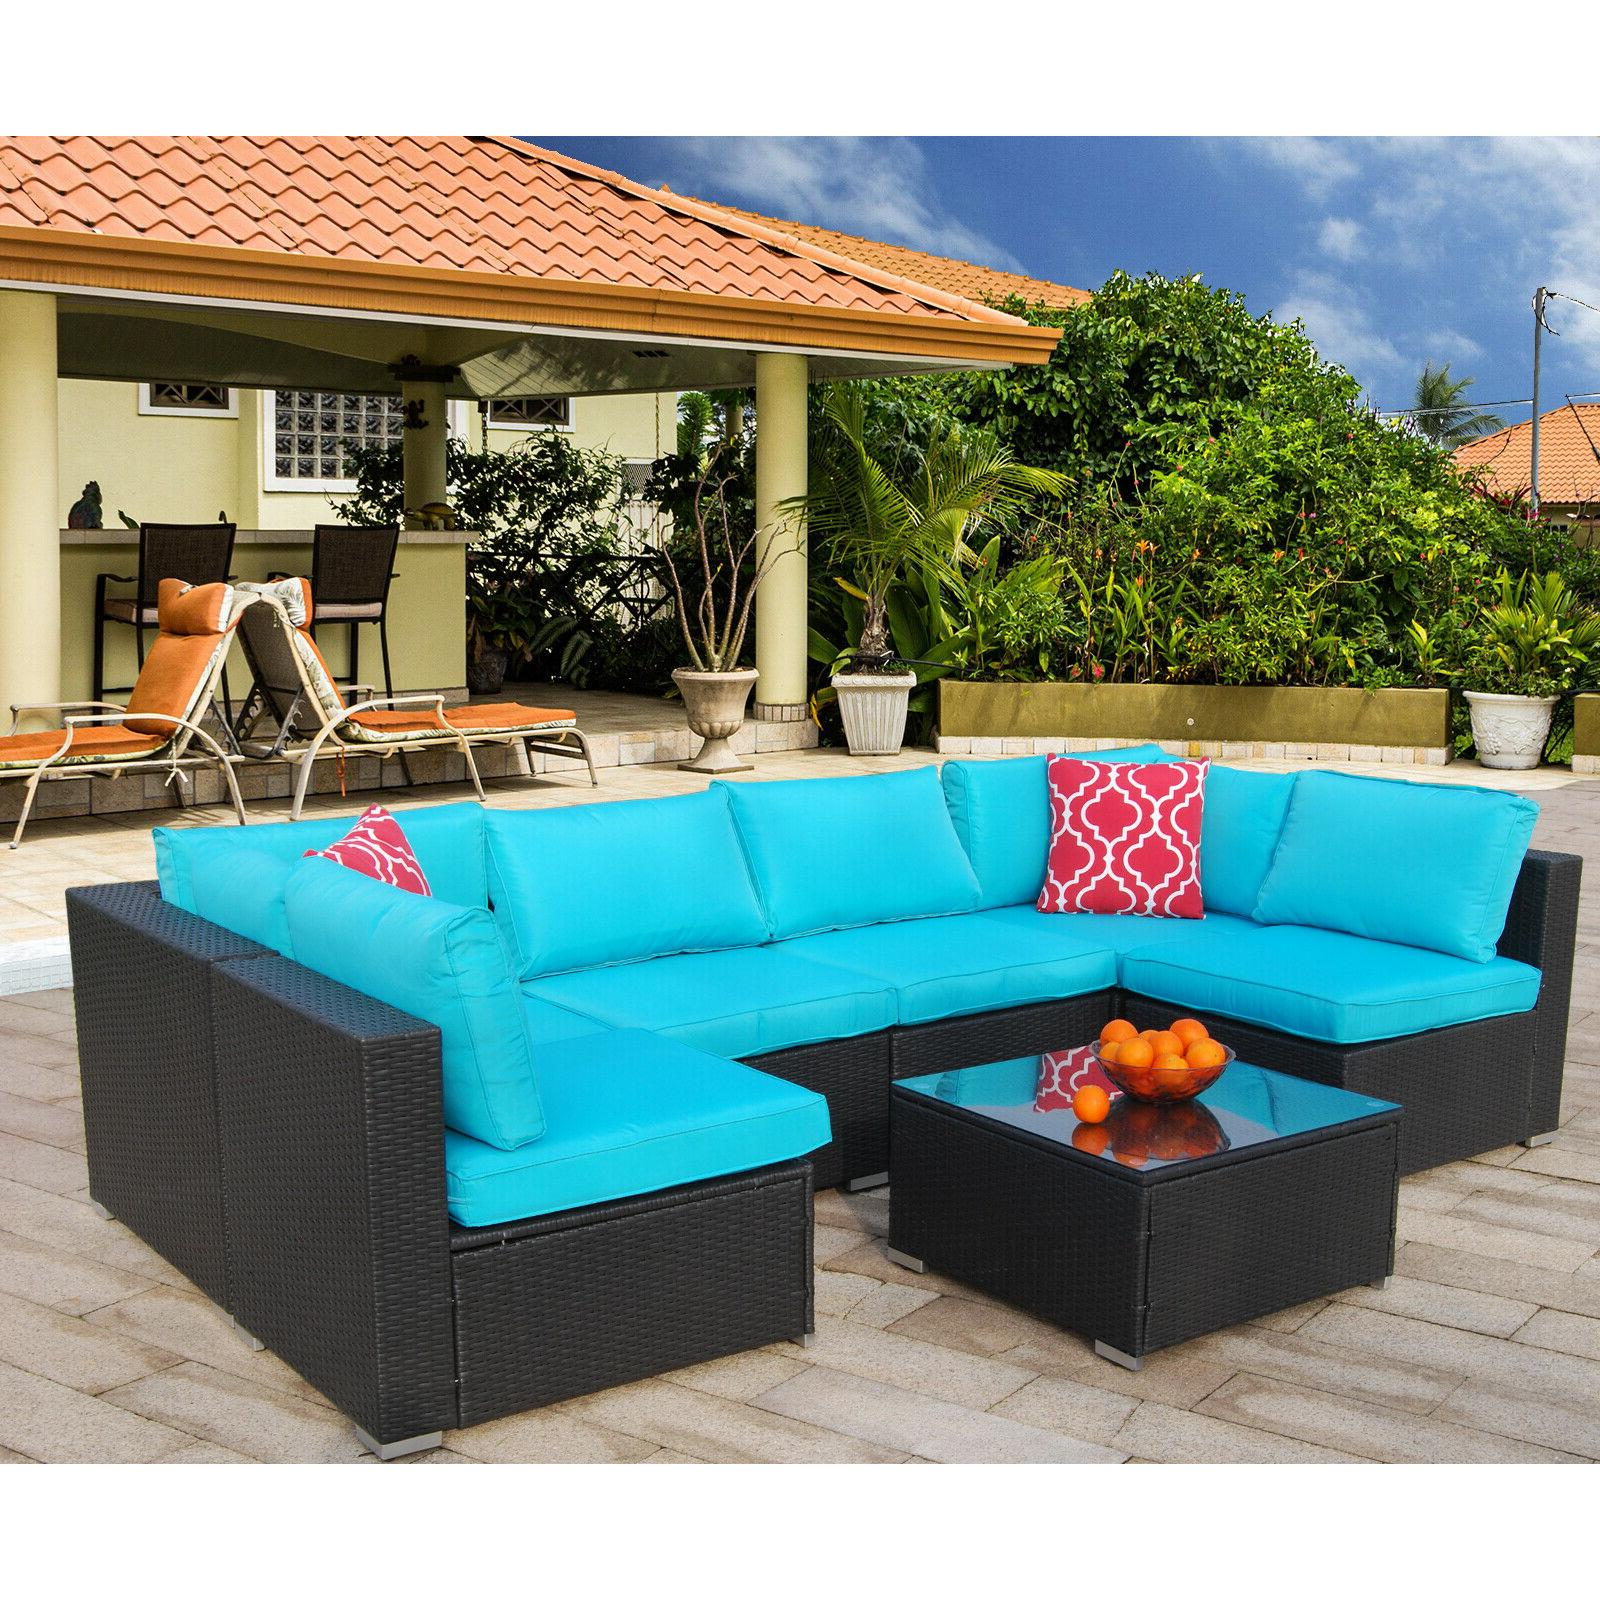 7 Patio Sofa Set Furniture